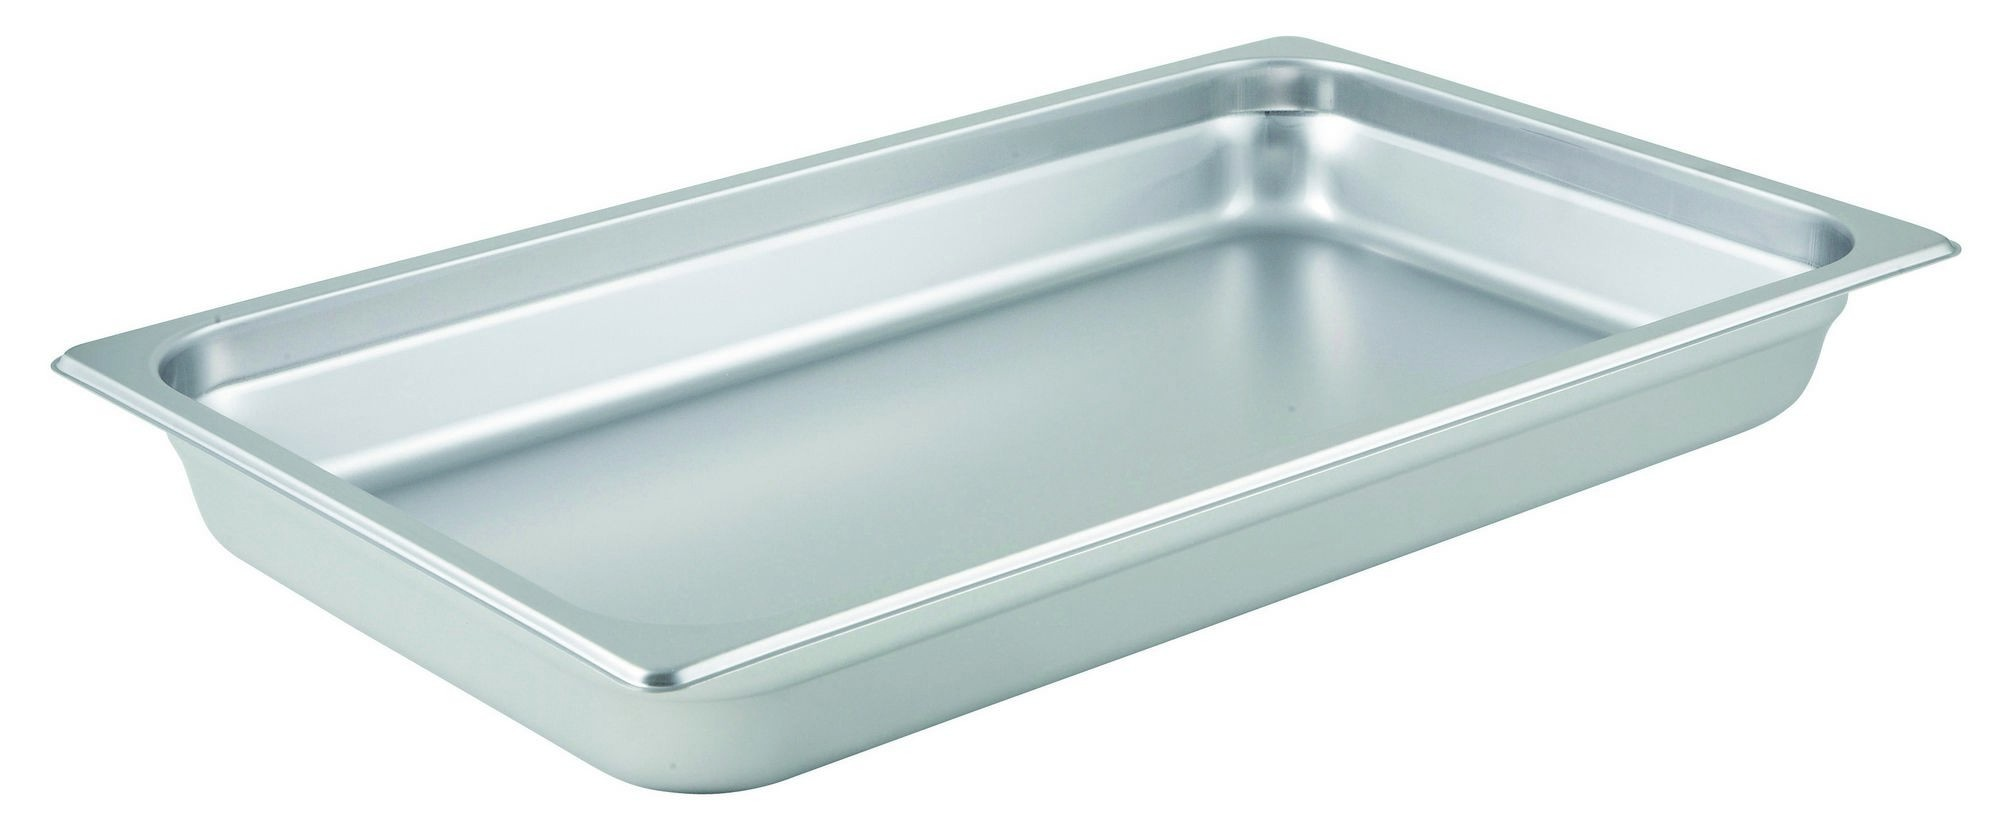 Winco Full Size Anti-Jamming Steam Table Pan (24 Gauge, 2.5